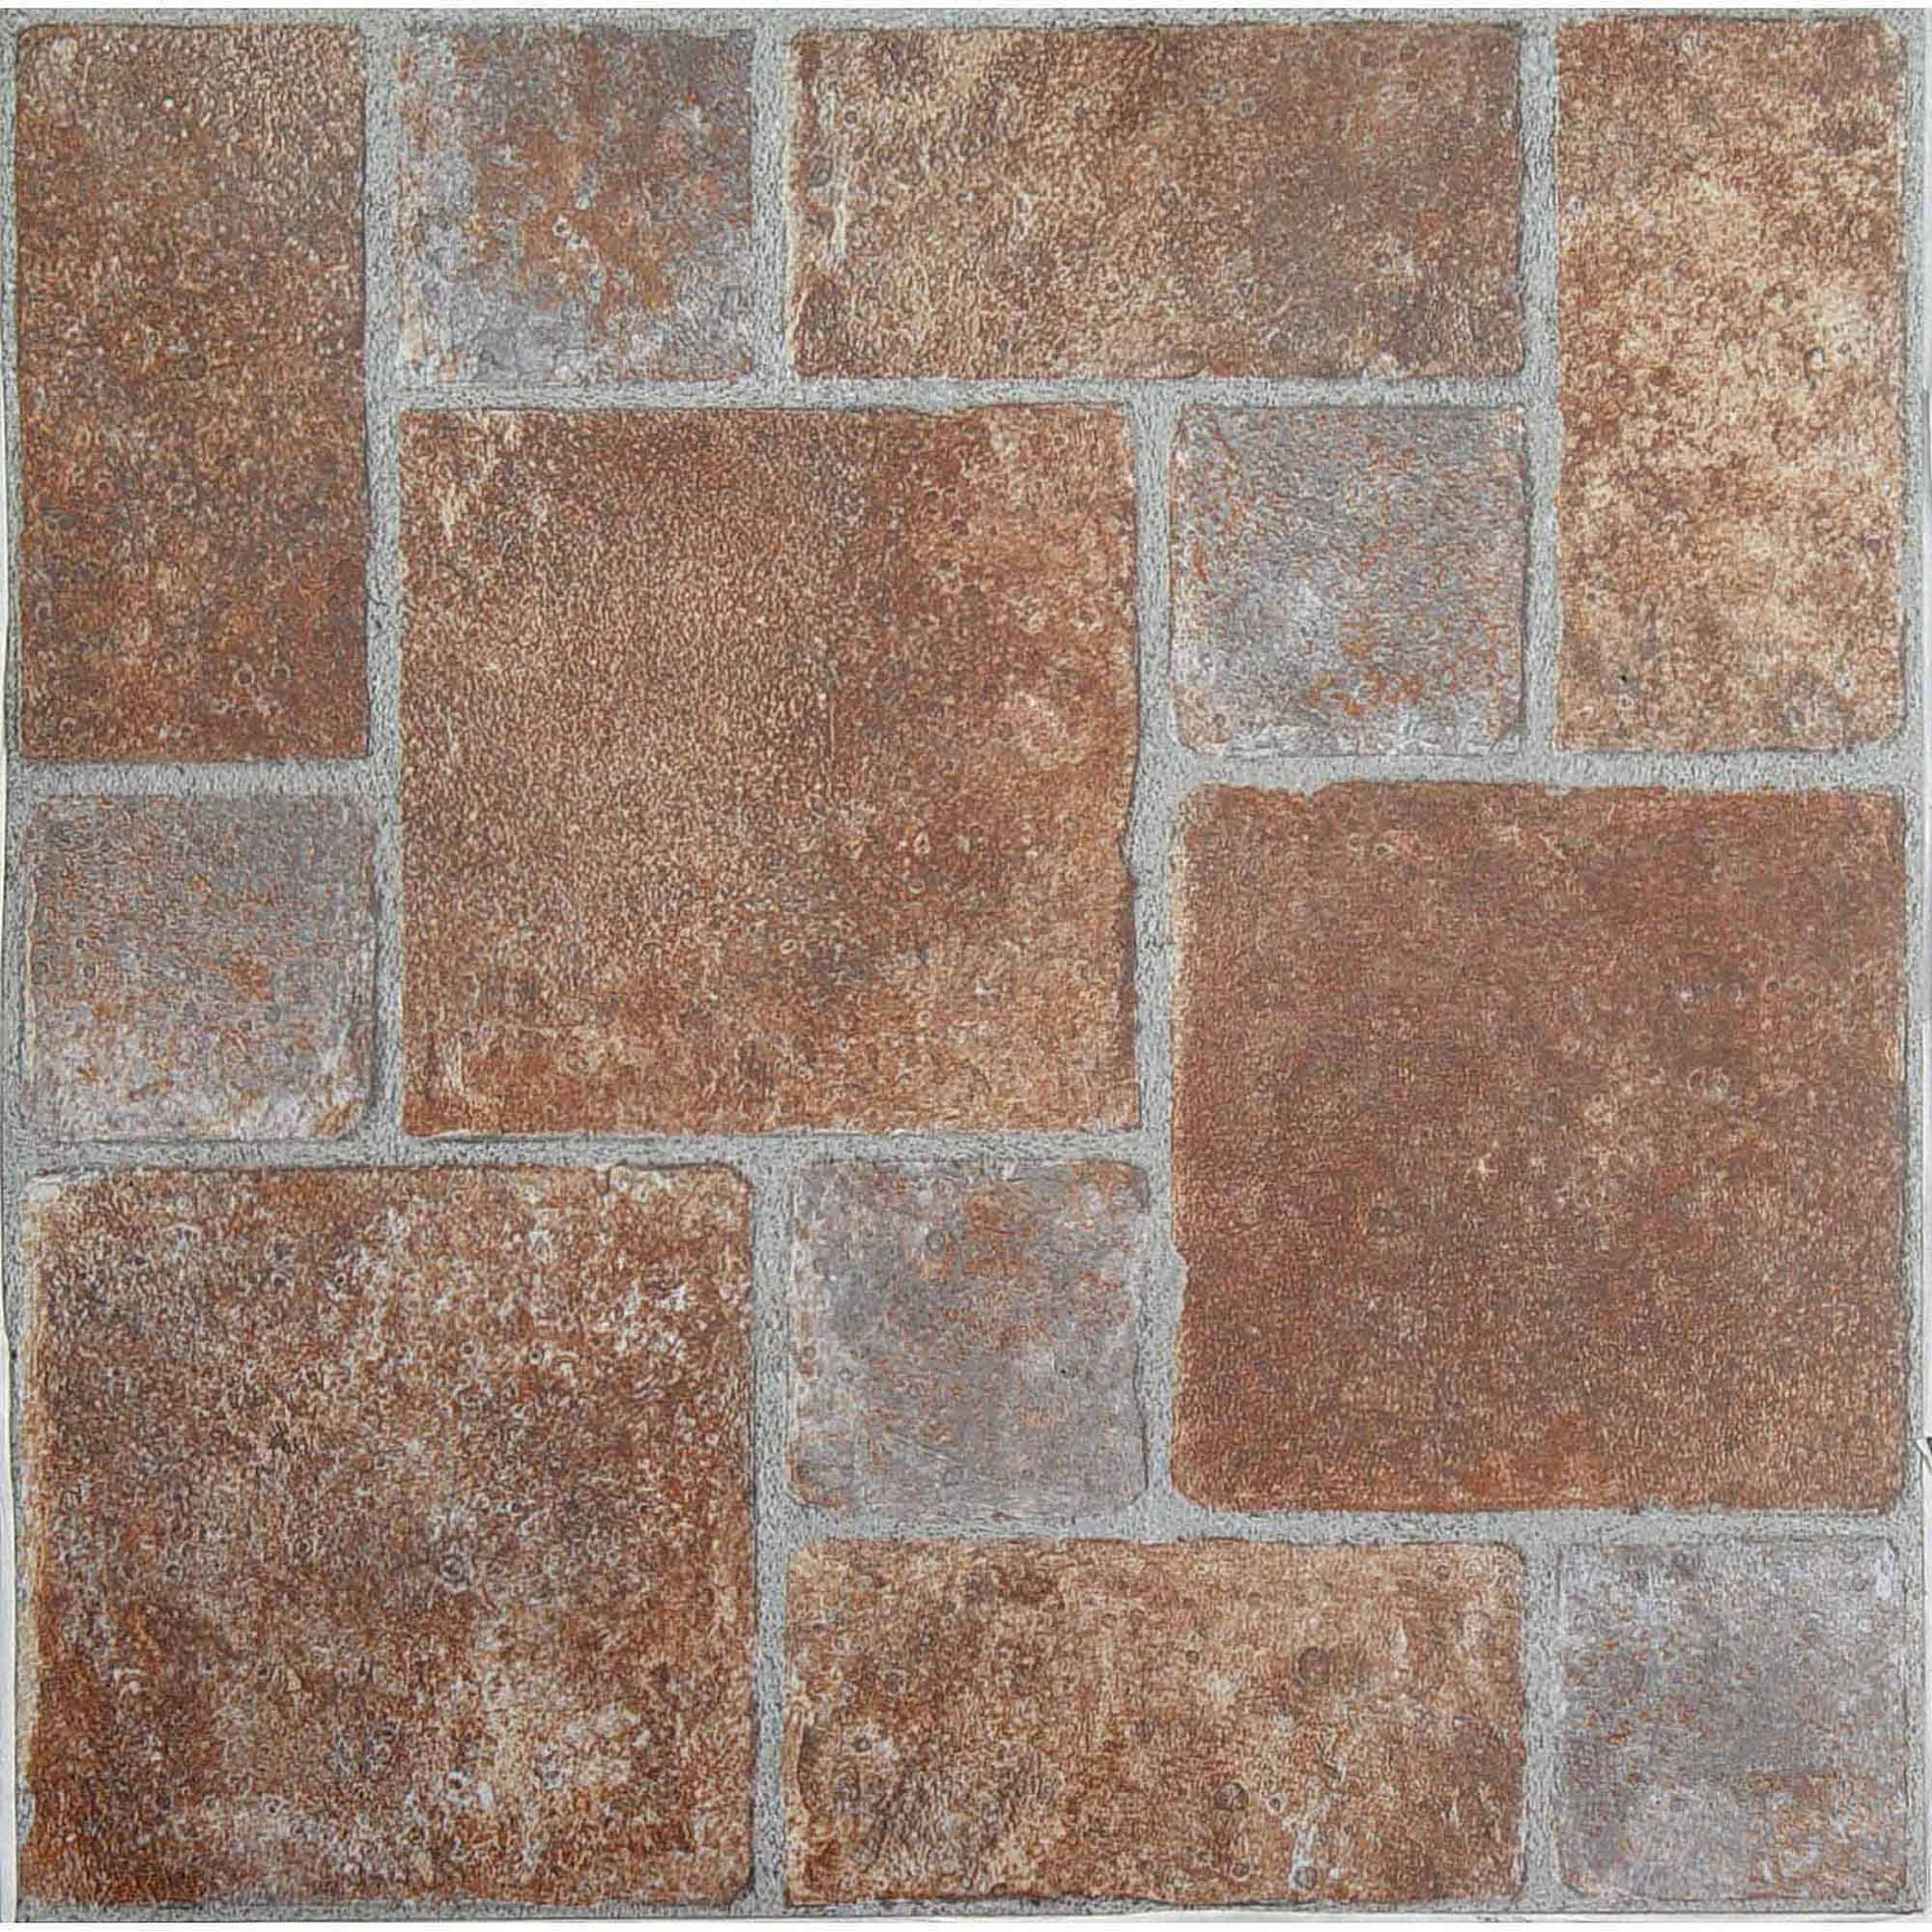 NEXUS Brick Pavers 12x12 Self Adhesive Vinyl Floor Tile- 20 Tiles/20 Sq.Ft.